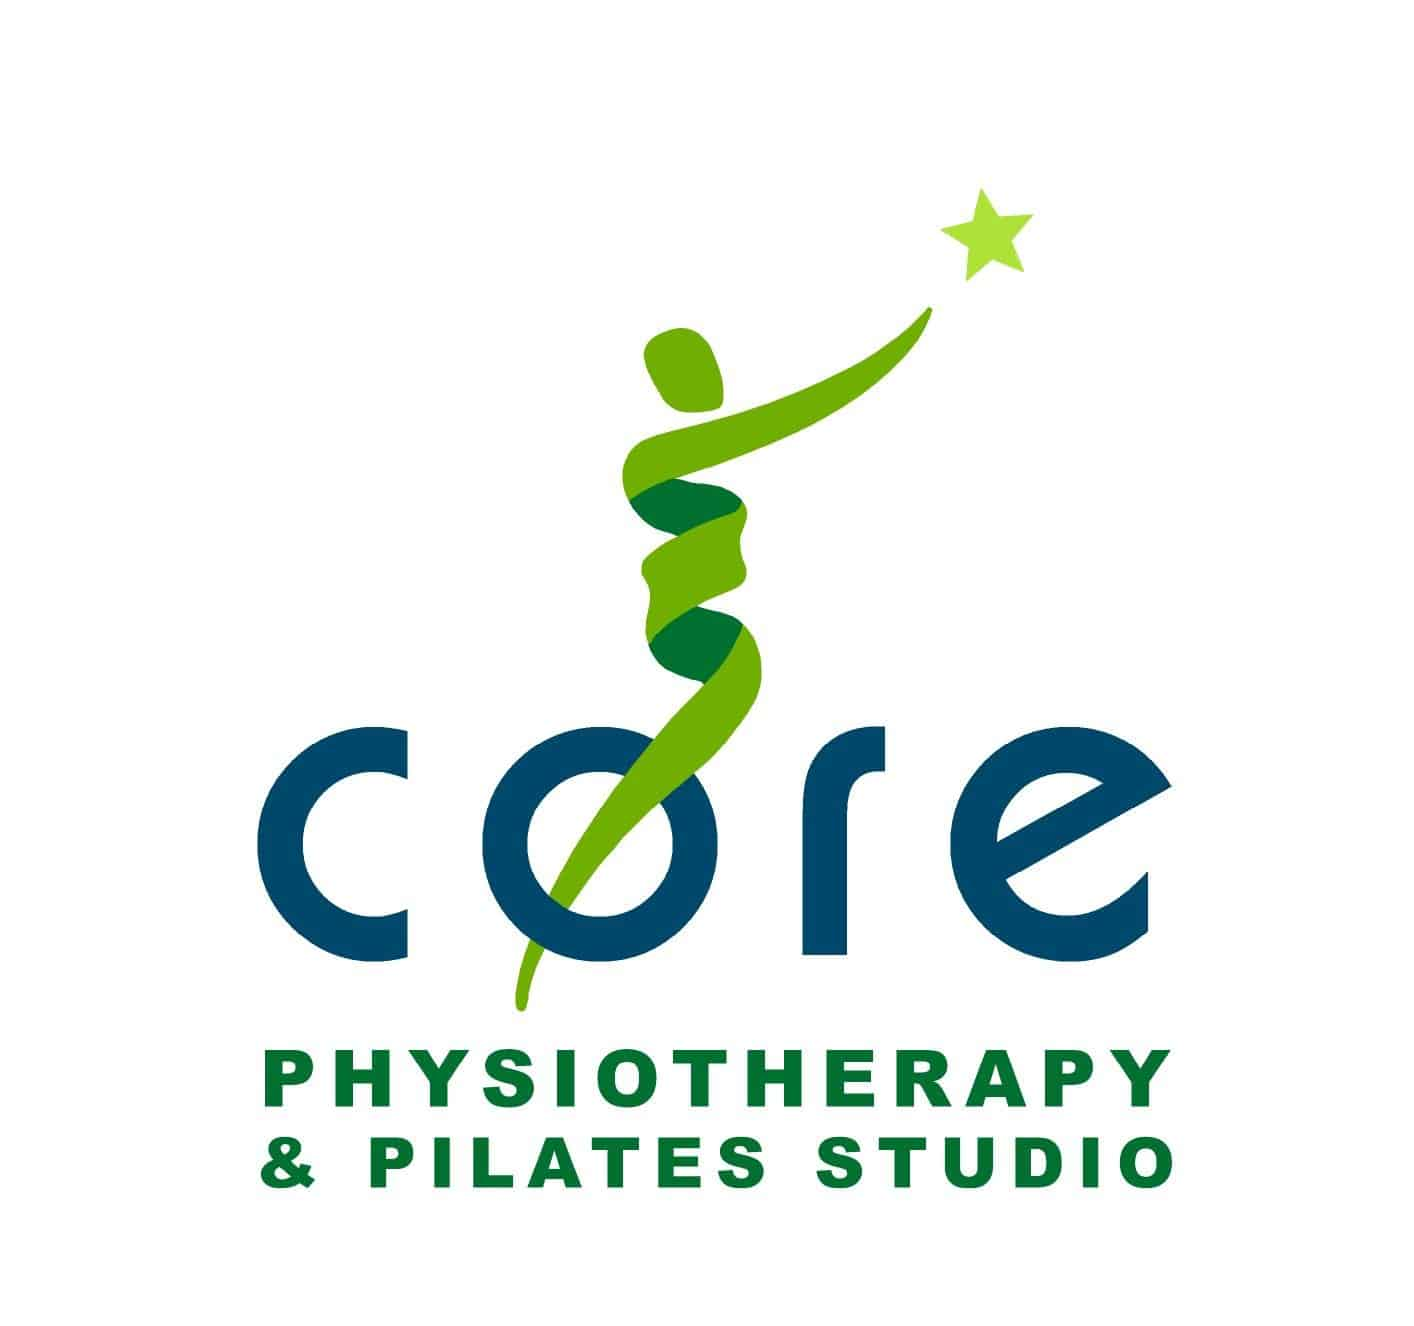 physio adelaide, adelaide physio, physiotherapy adelaide, adelaide cbd physio, physio near me, physiotherapy near me, adelaide physiotherapy, physio grenfell st, physio north terrace, physio king william st, physio gawler place